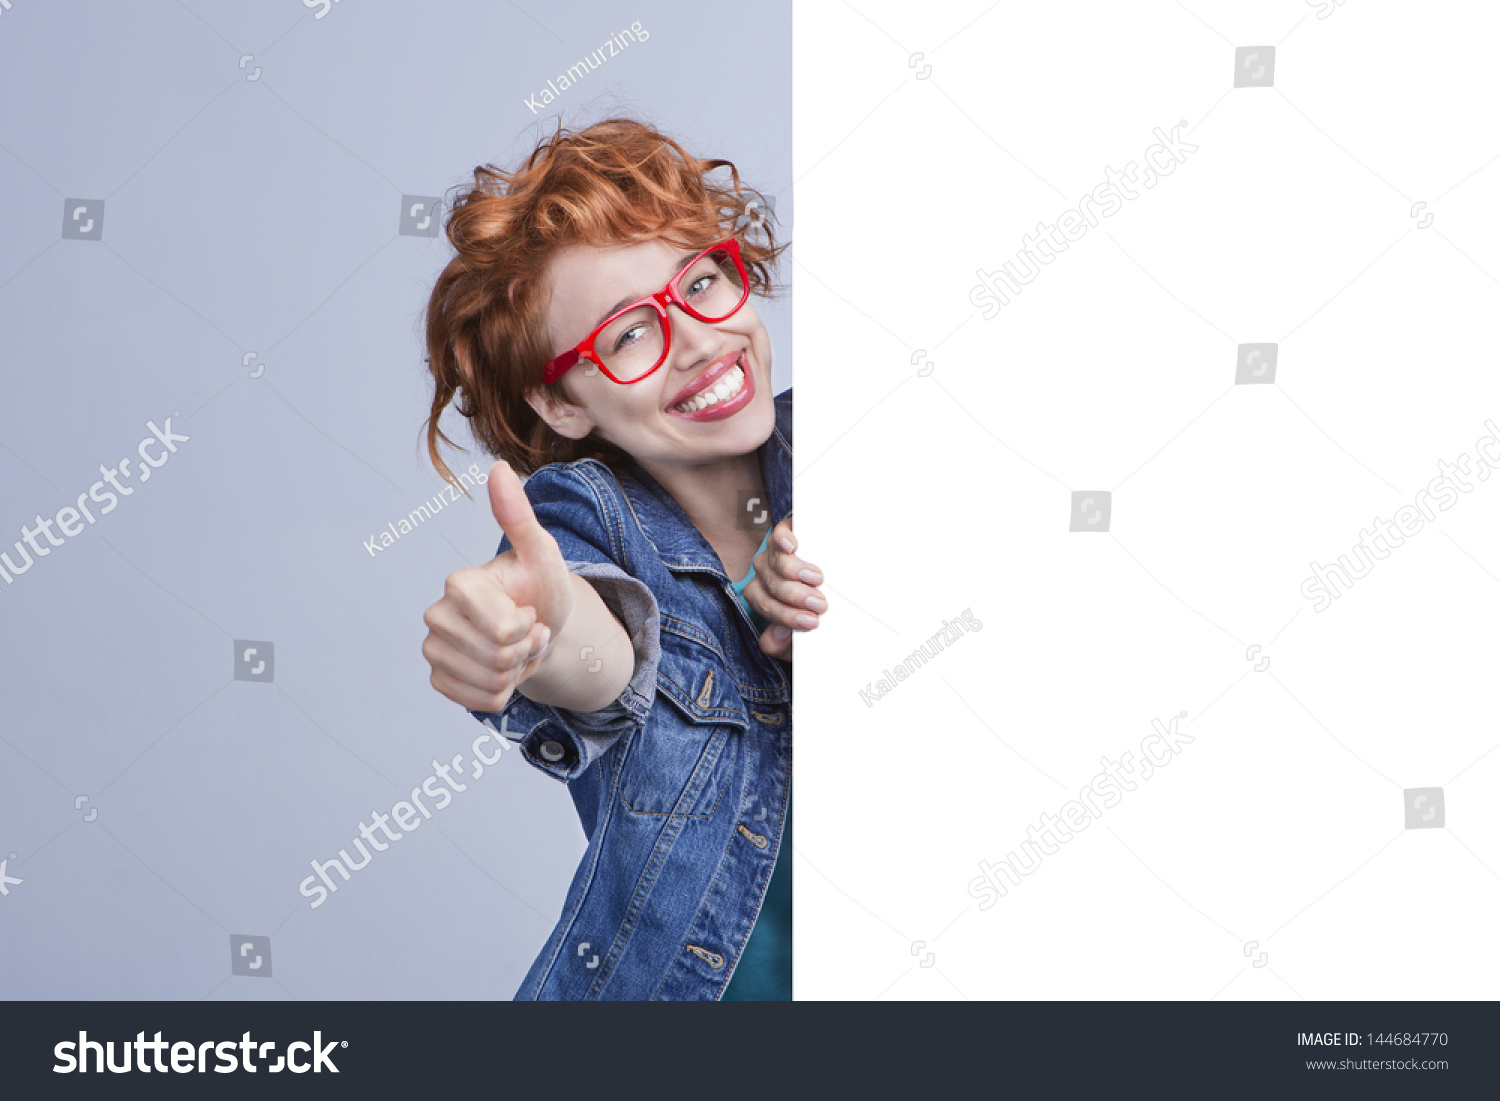 Rimless Glasses More Attractive : Attractive Red-Haired Girl With Red Rimless Glasses And ...